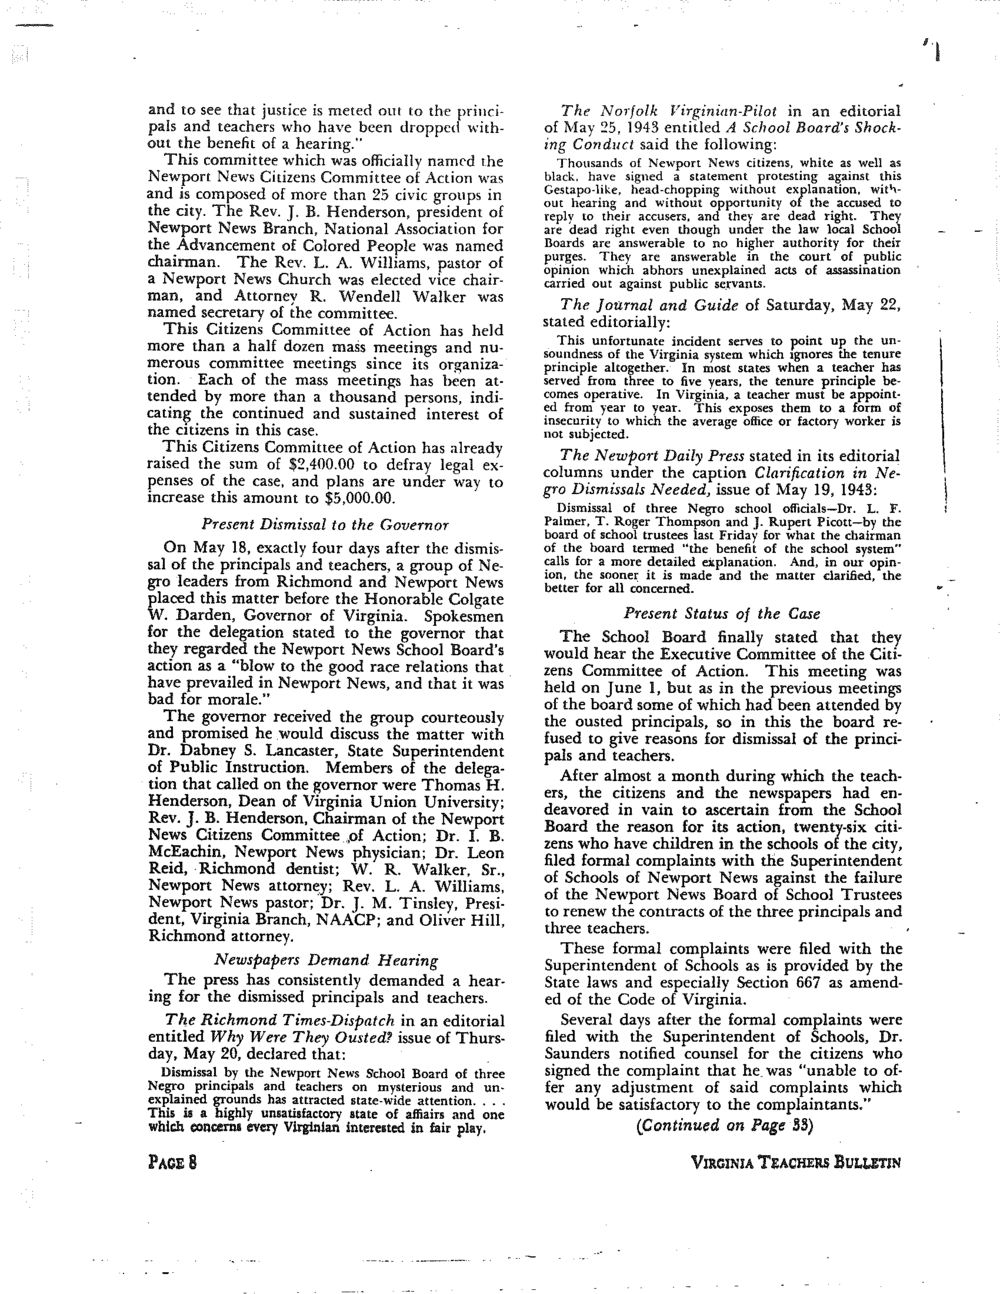 Zeta Lambda 1943 - The Newport News Case 3.png